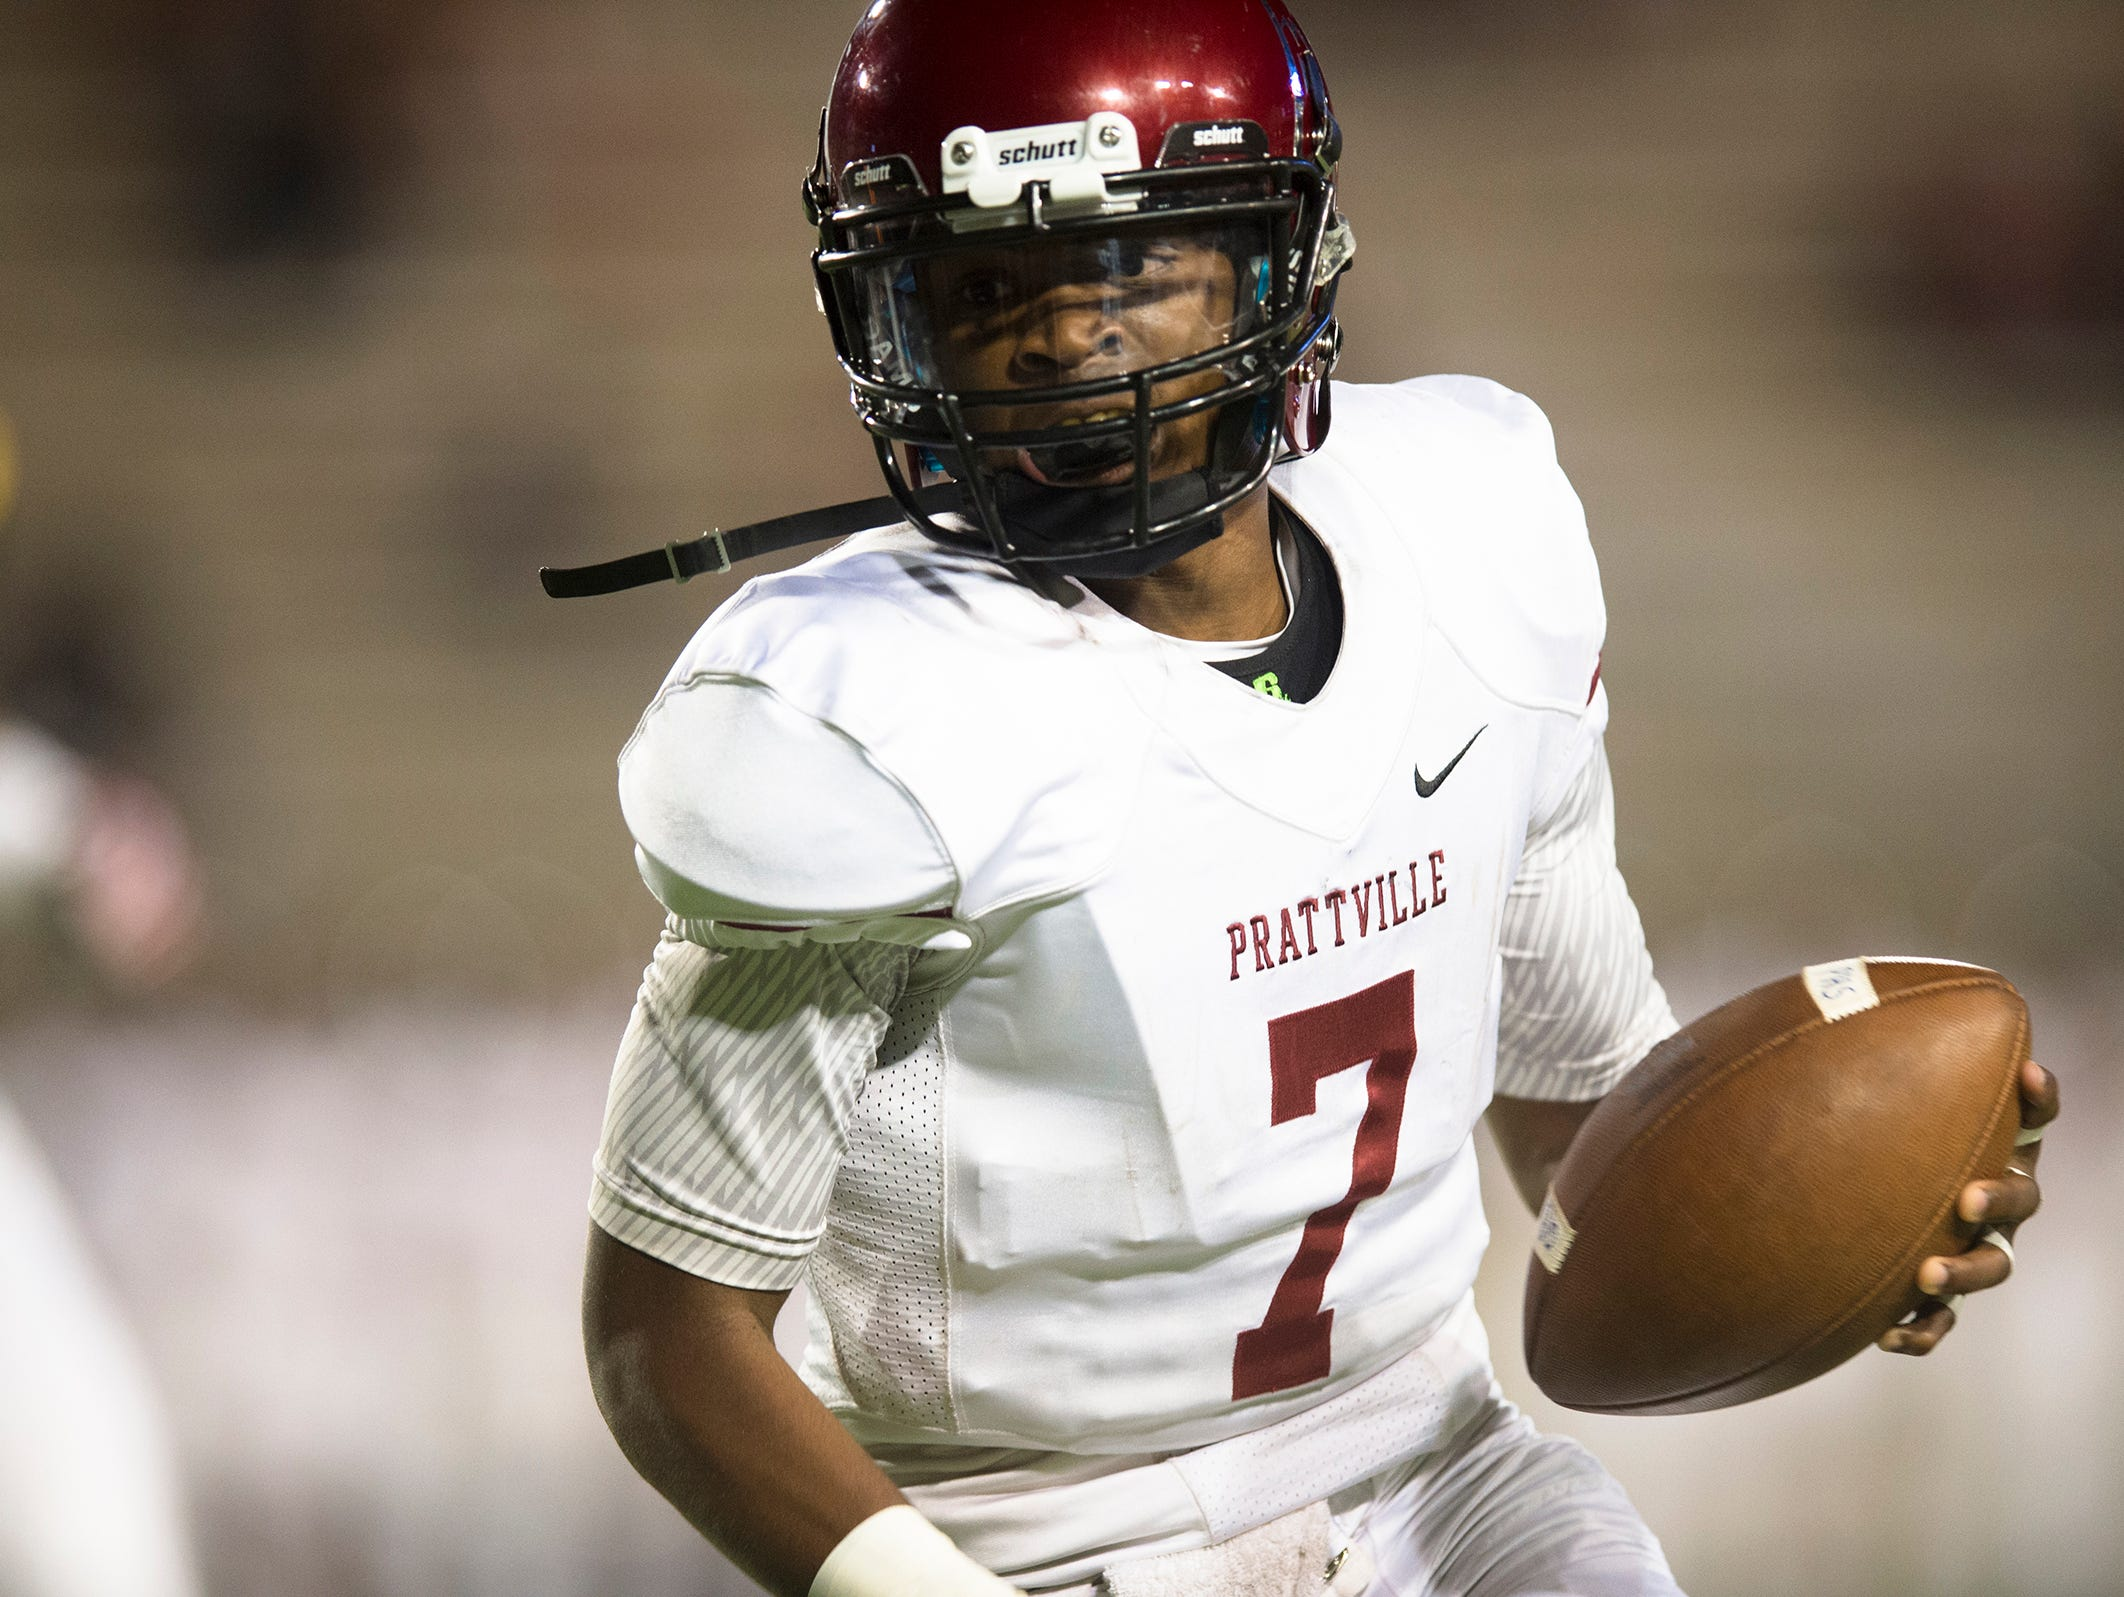 Prattville's Josh Moore (7) runs around the end during the AHSAA football game on Friday, Sept. 25, 2015, at Cramton Bowl in Montgomery, Ala.